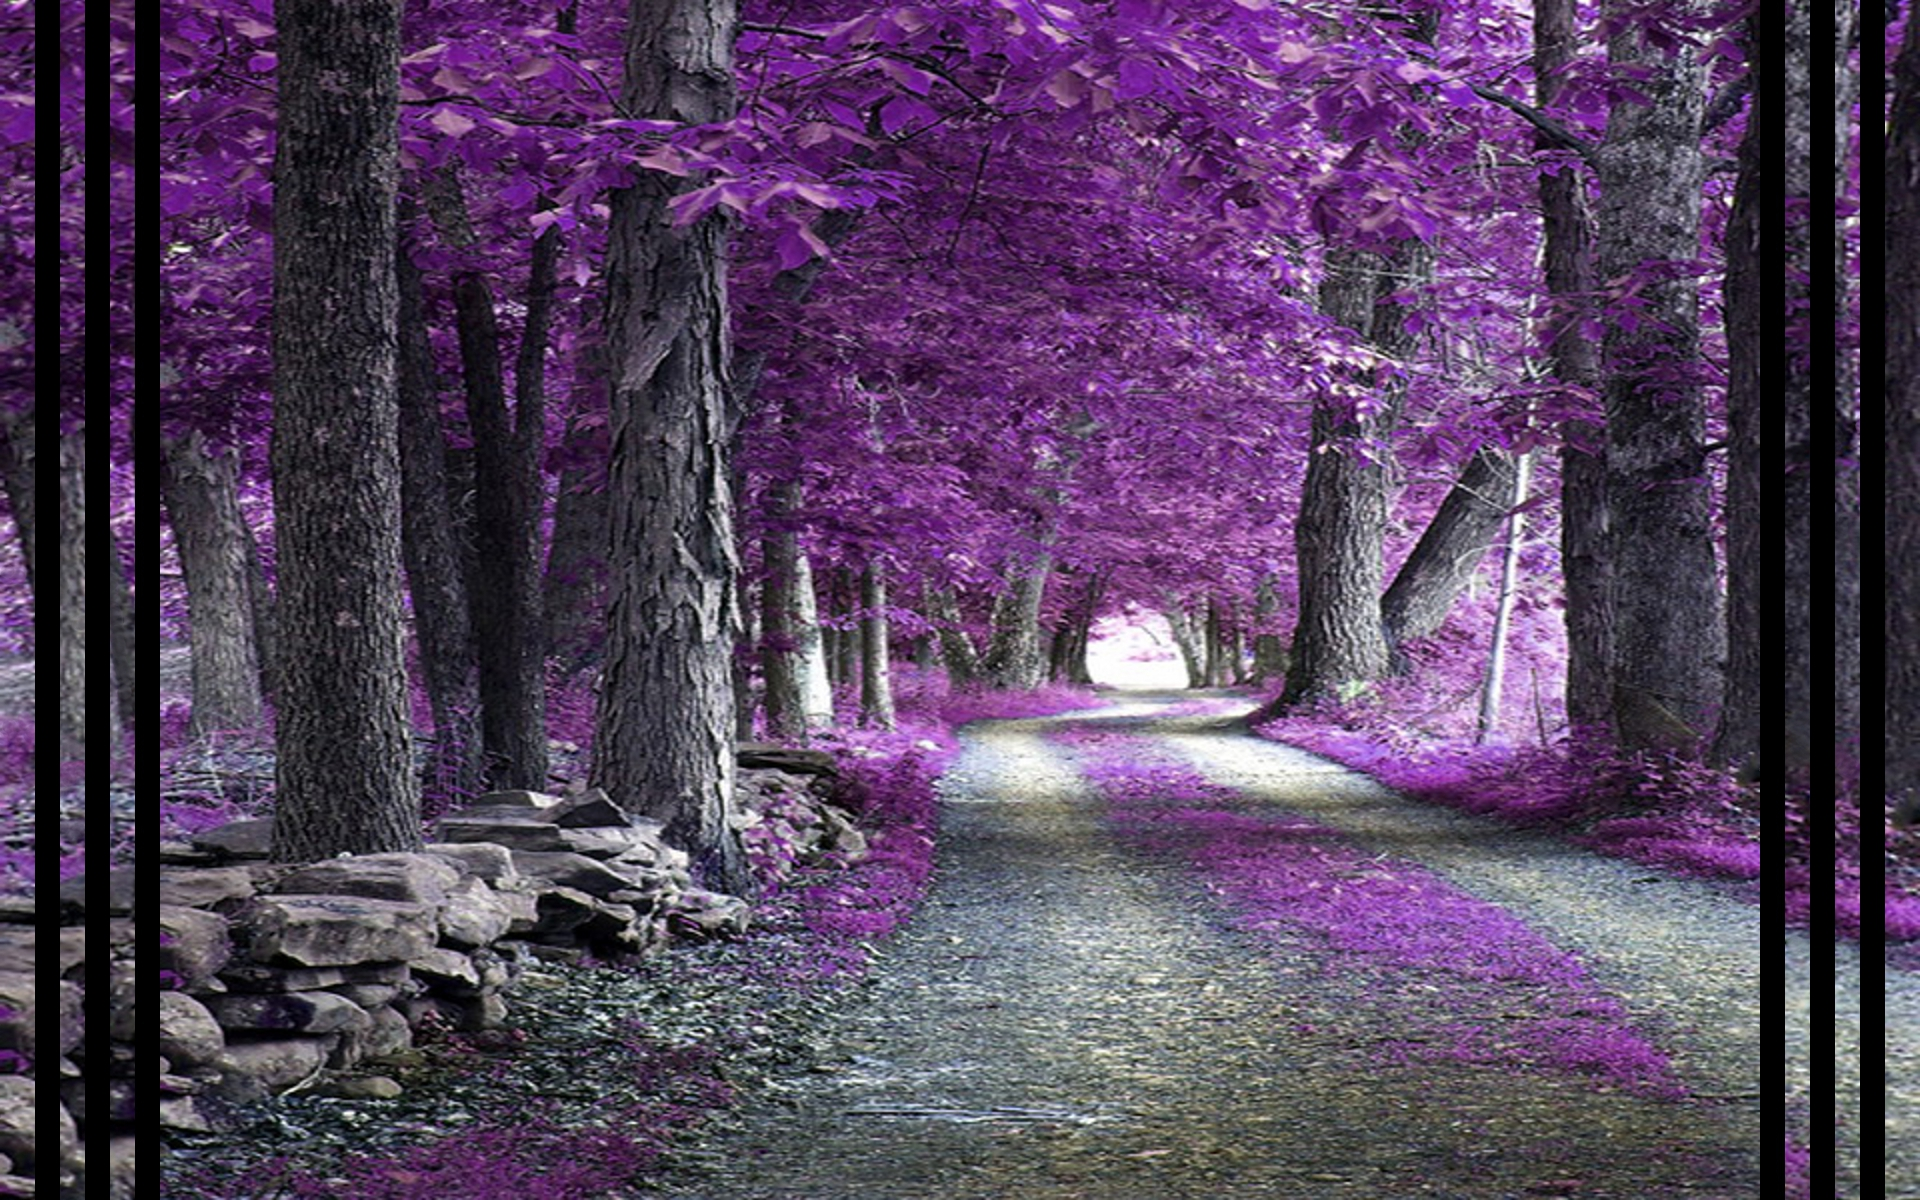 wallpaper nature desktop purple - photo #35